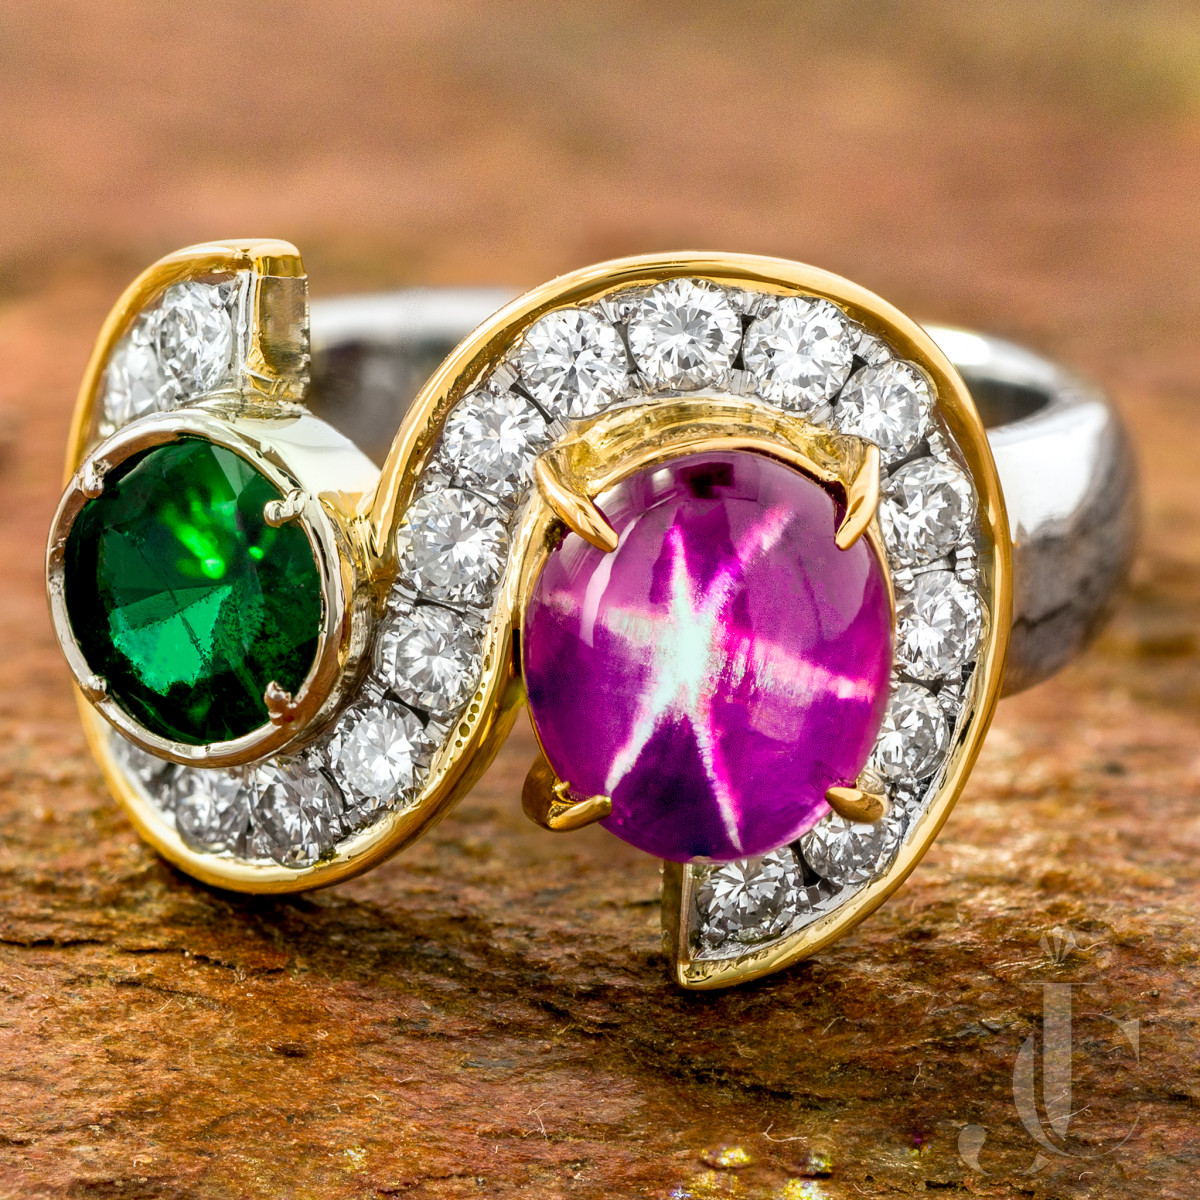 Star Ruby, Emerald and Diamond Ring, 20K YG and Platinum